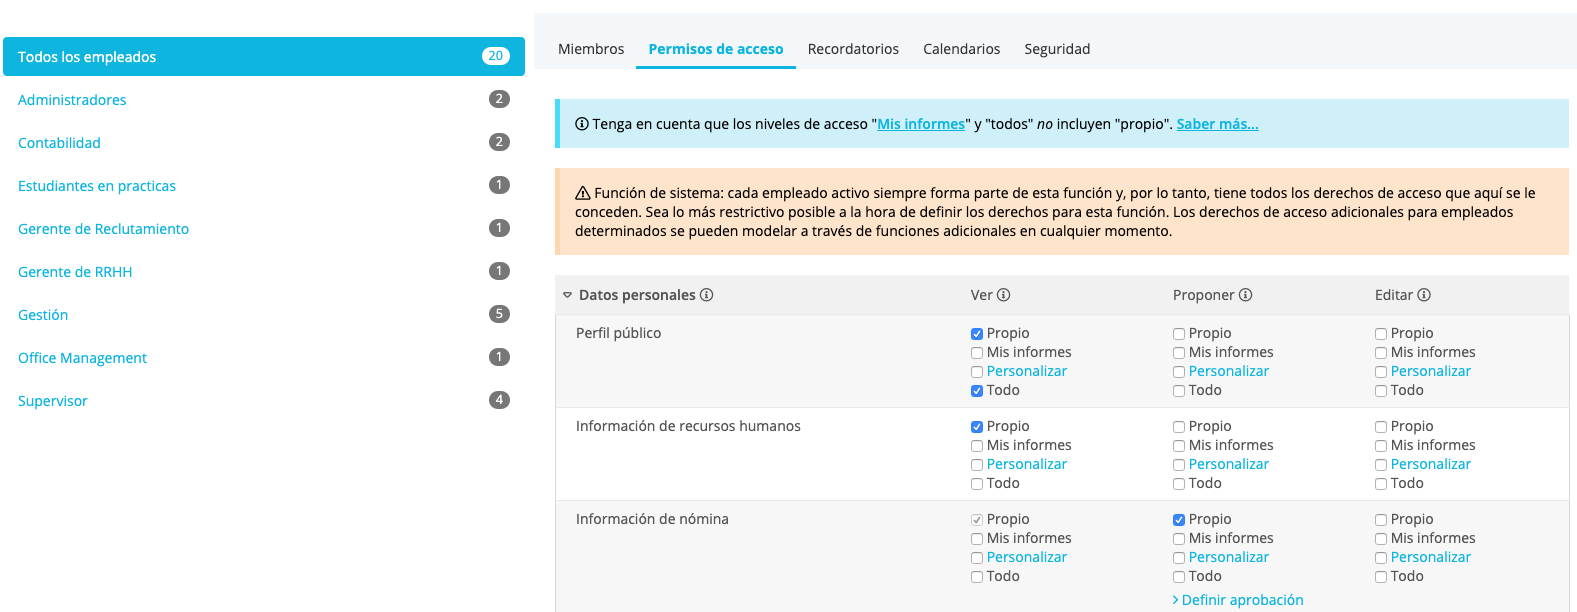 settings-employee-roles-access-rights_es.png